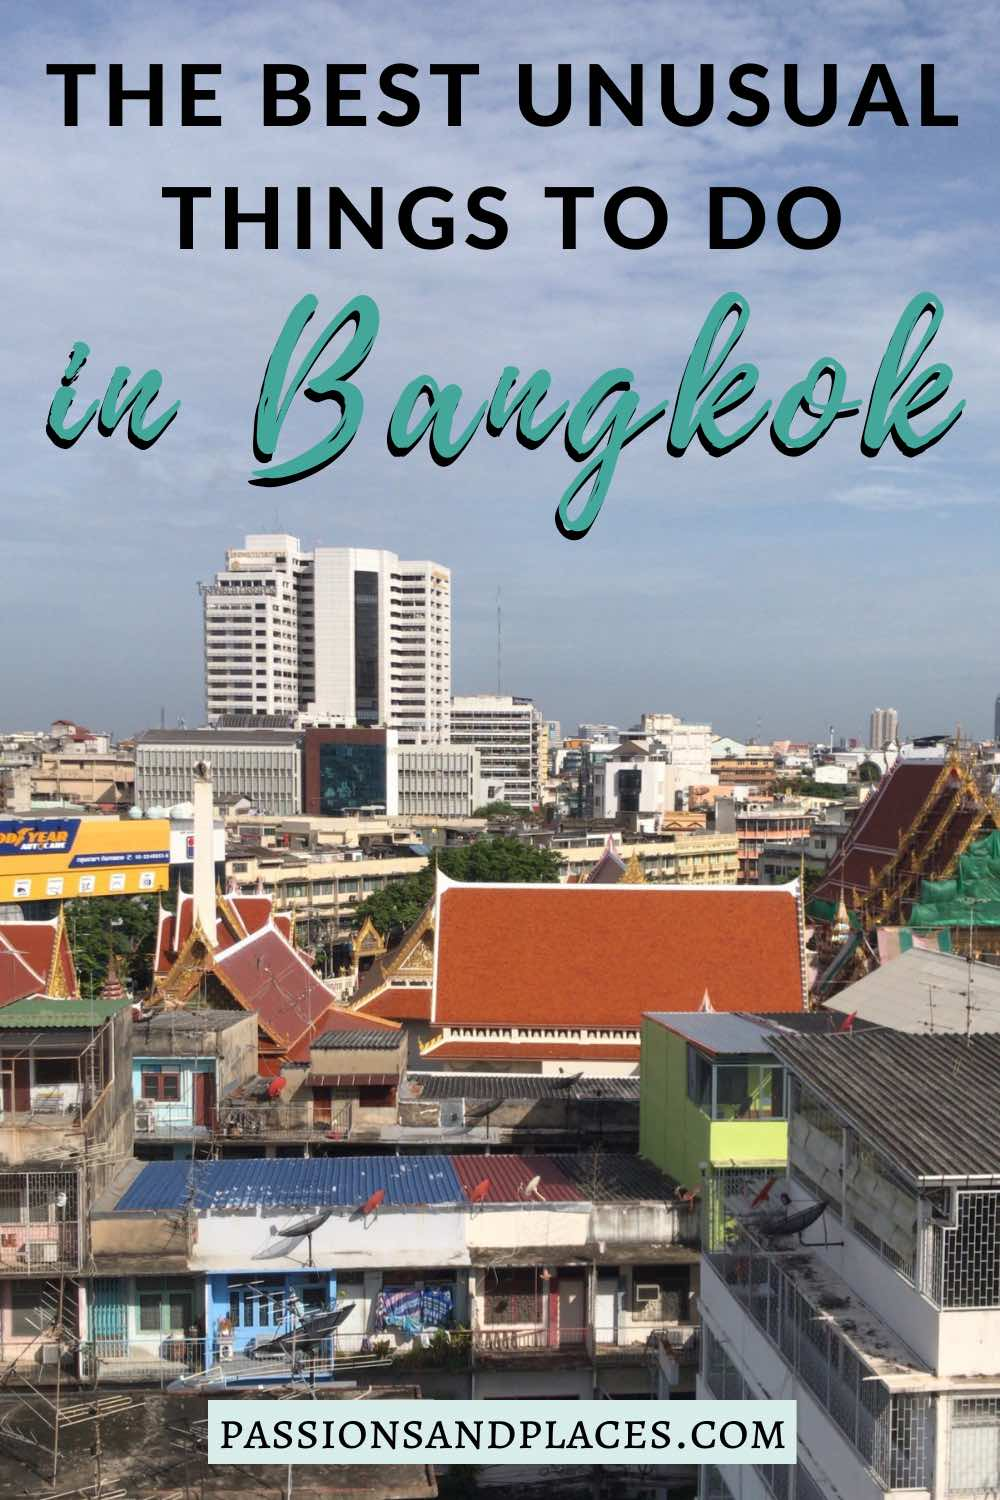 There are so many iconic sights in Bangkok, from the Grand Palace and Wat Arun to Khao San Road. But if you're looking for something a little different, try this list of non-touristy things to do in Bangkok. From abandoned buildings to one-of-a-kind restaurants, these are some of the weirdest things to do - and maybe the most memorable. #Bangkok #Thailand #offthebeatenpath